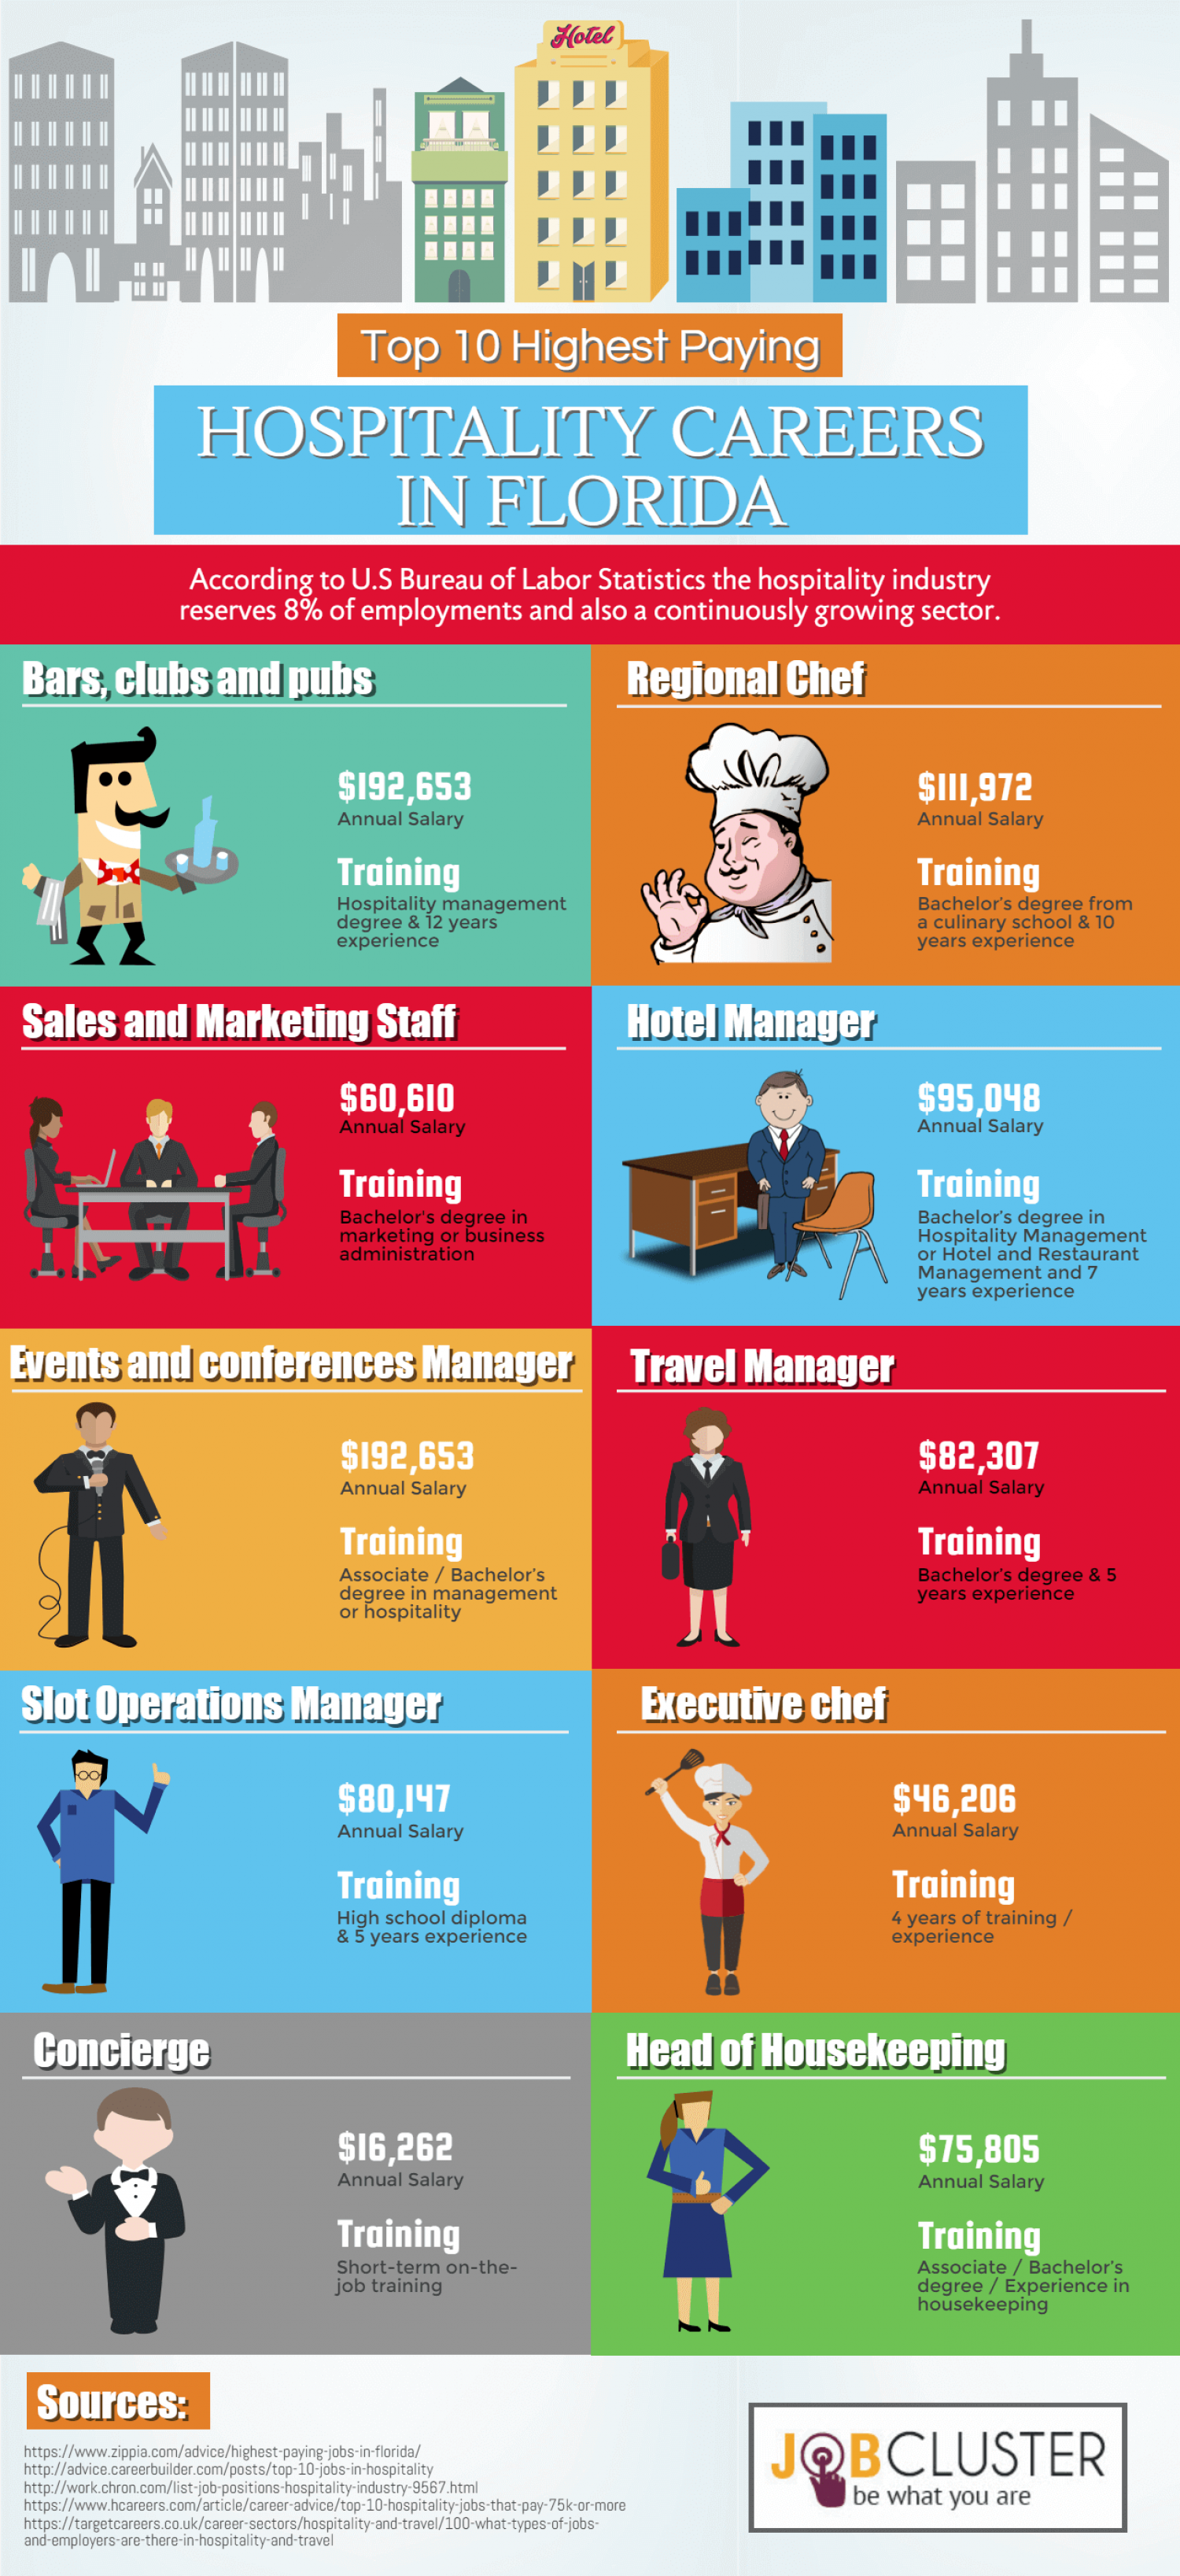 Top 10 Highest Paying Hospitality Jobs in Florida Infographic